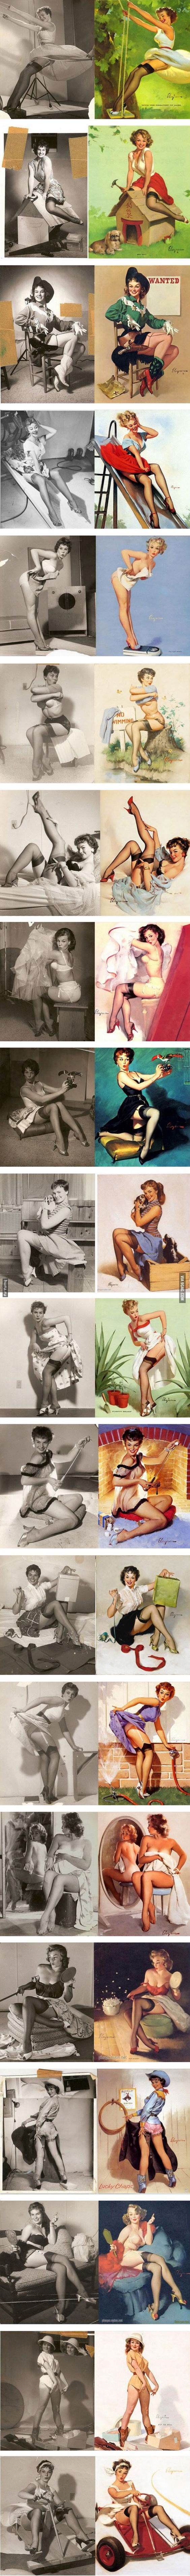 Before Photoshop, there was pinup art. I prefer the Pinup art!